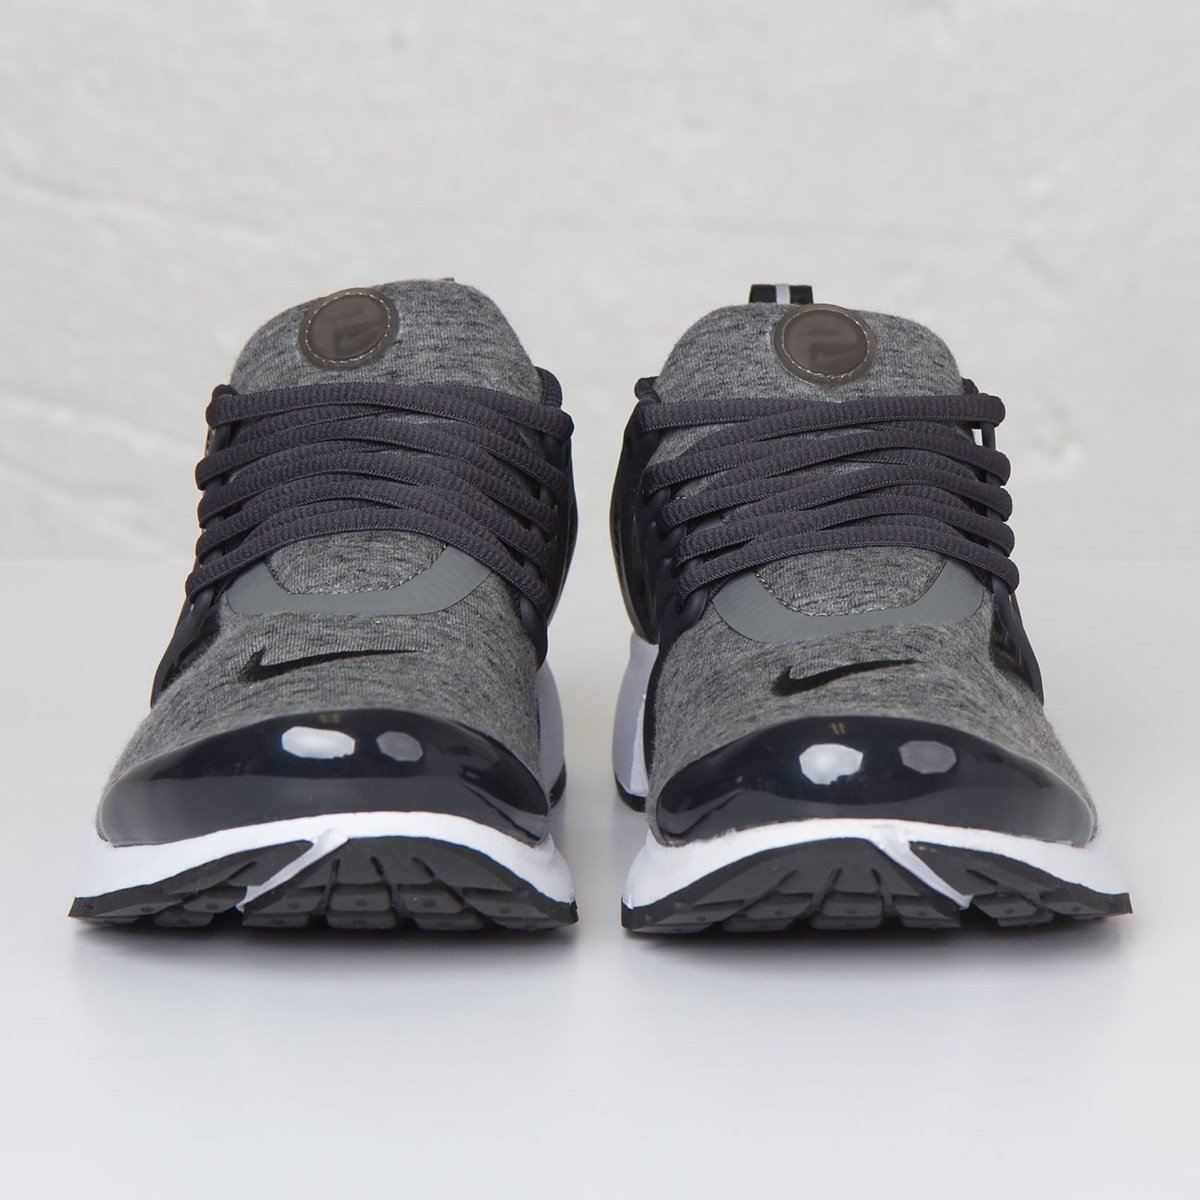 Nike Air Presto Fleece 812307 002 Sneakersnstuff I